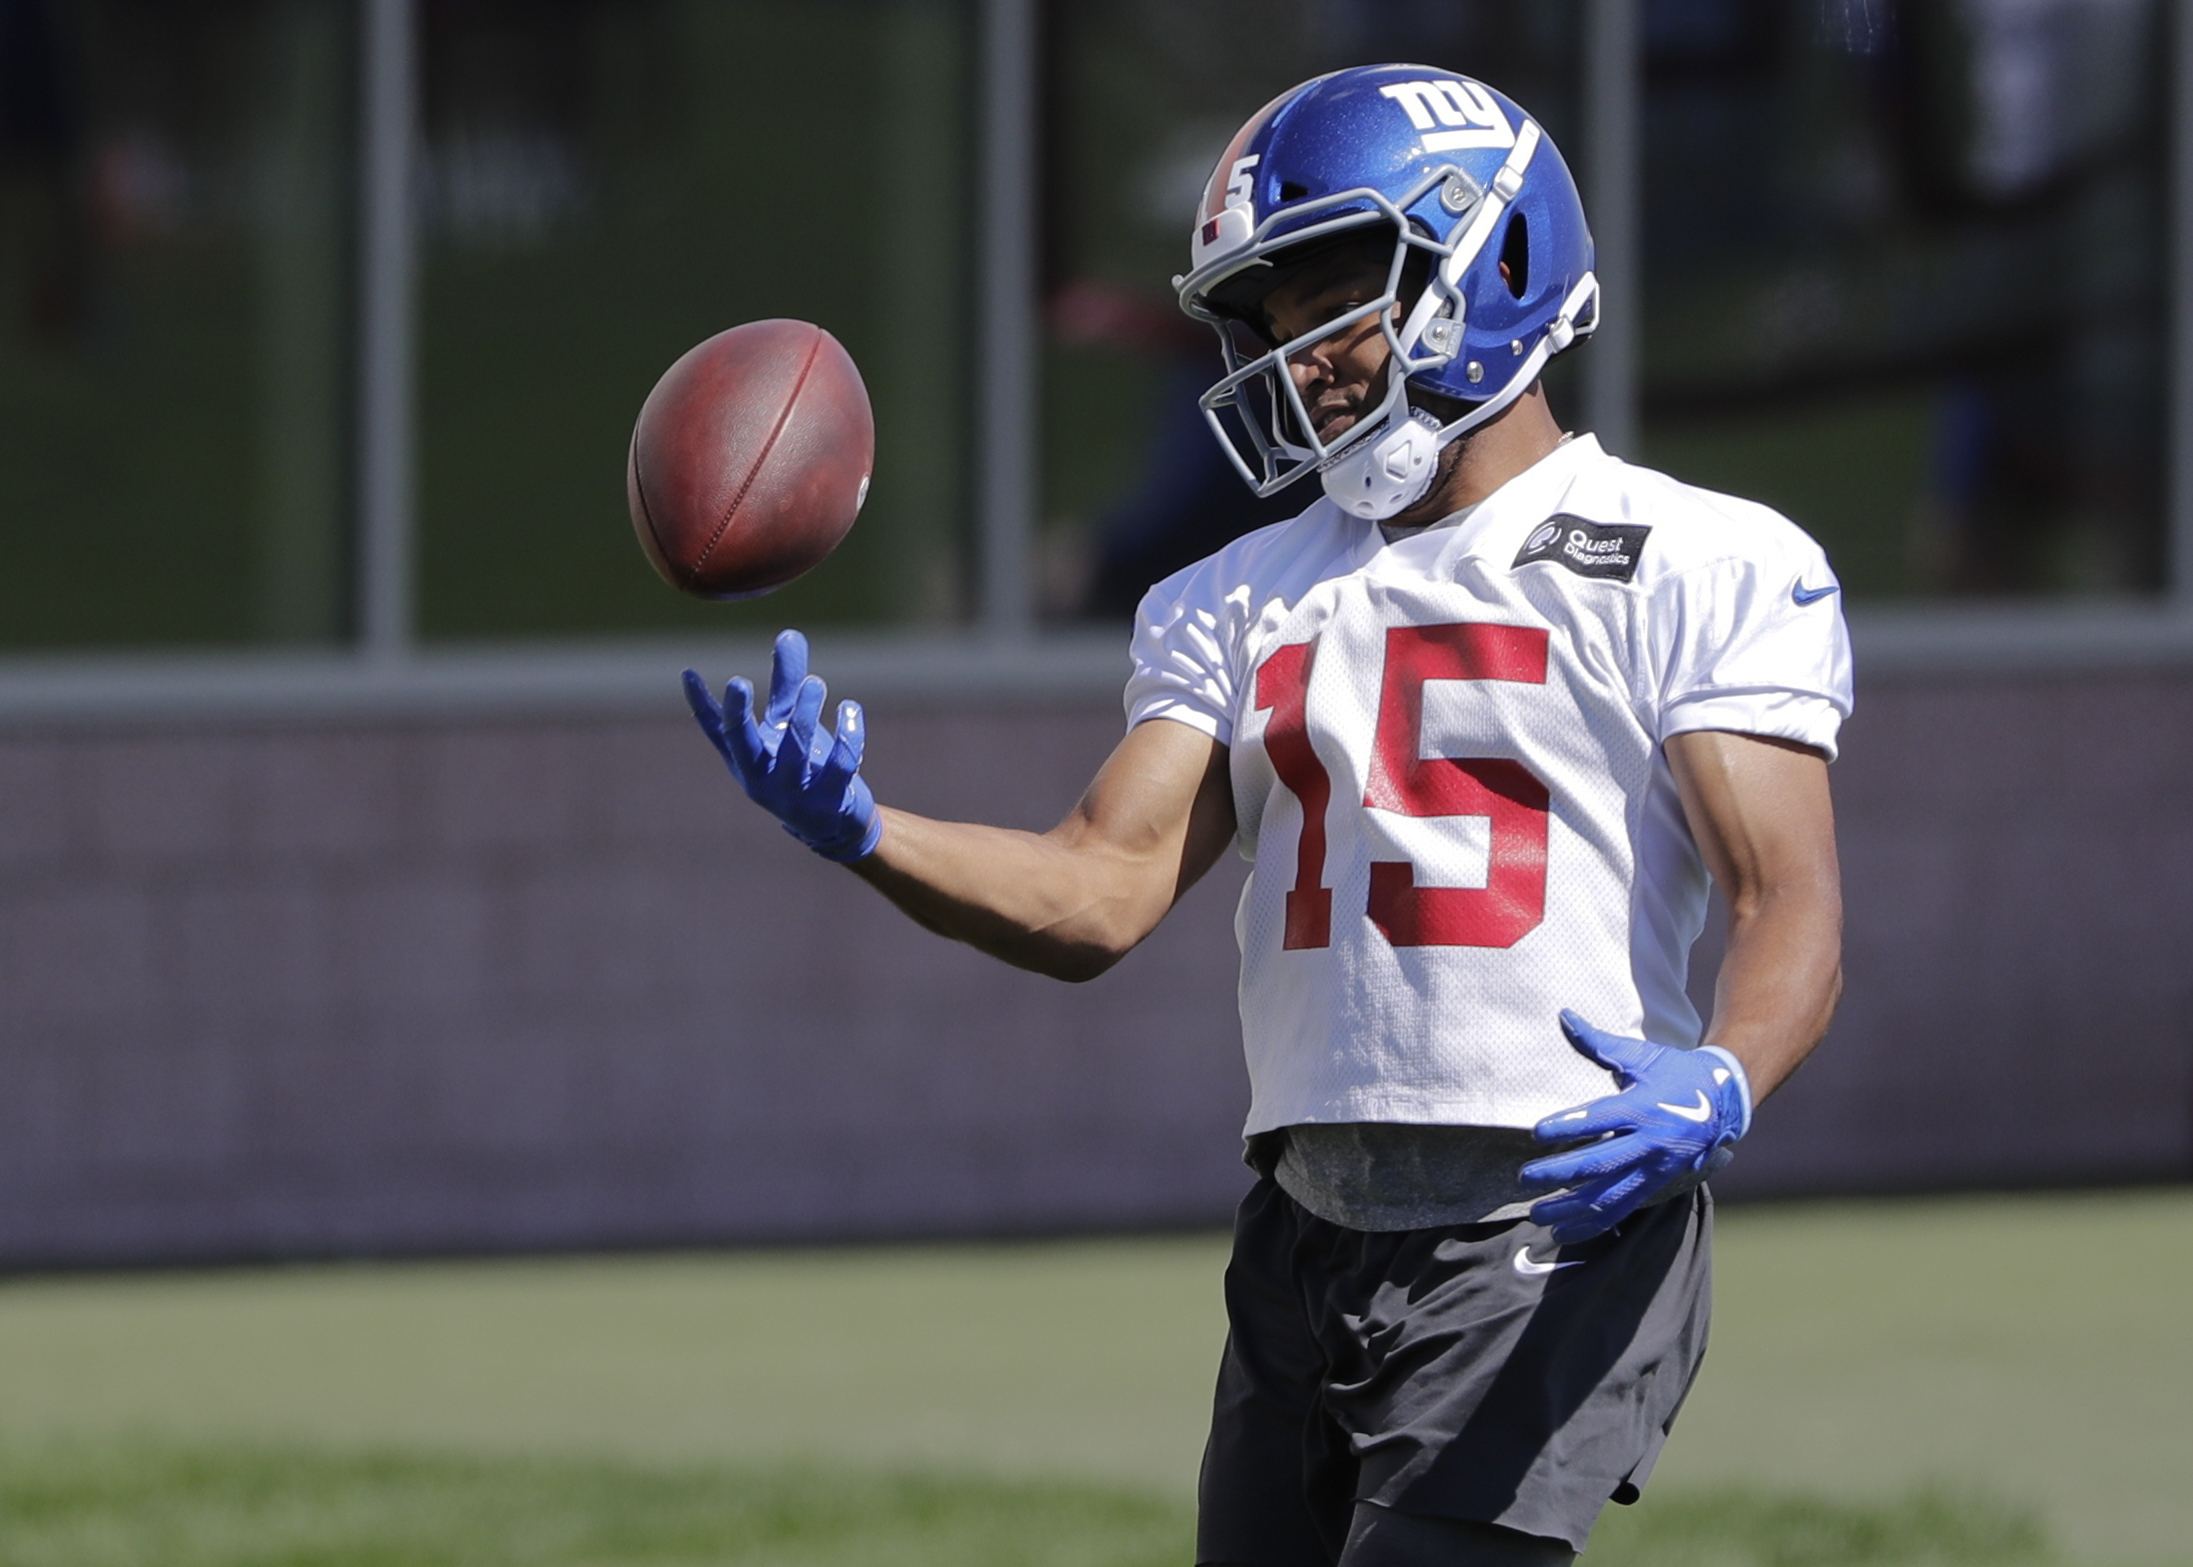 Gridiron Digest: Running Backs at the Crossroads as NFL Training